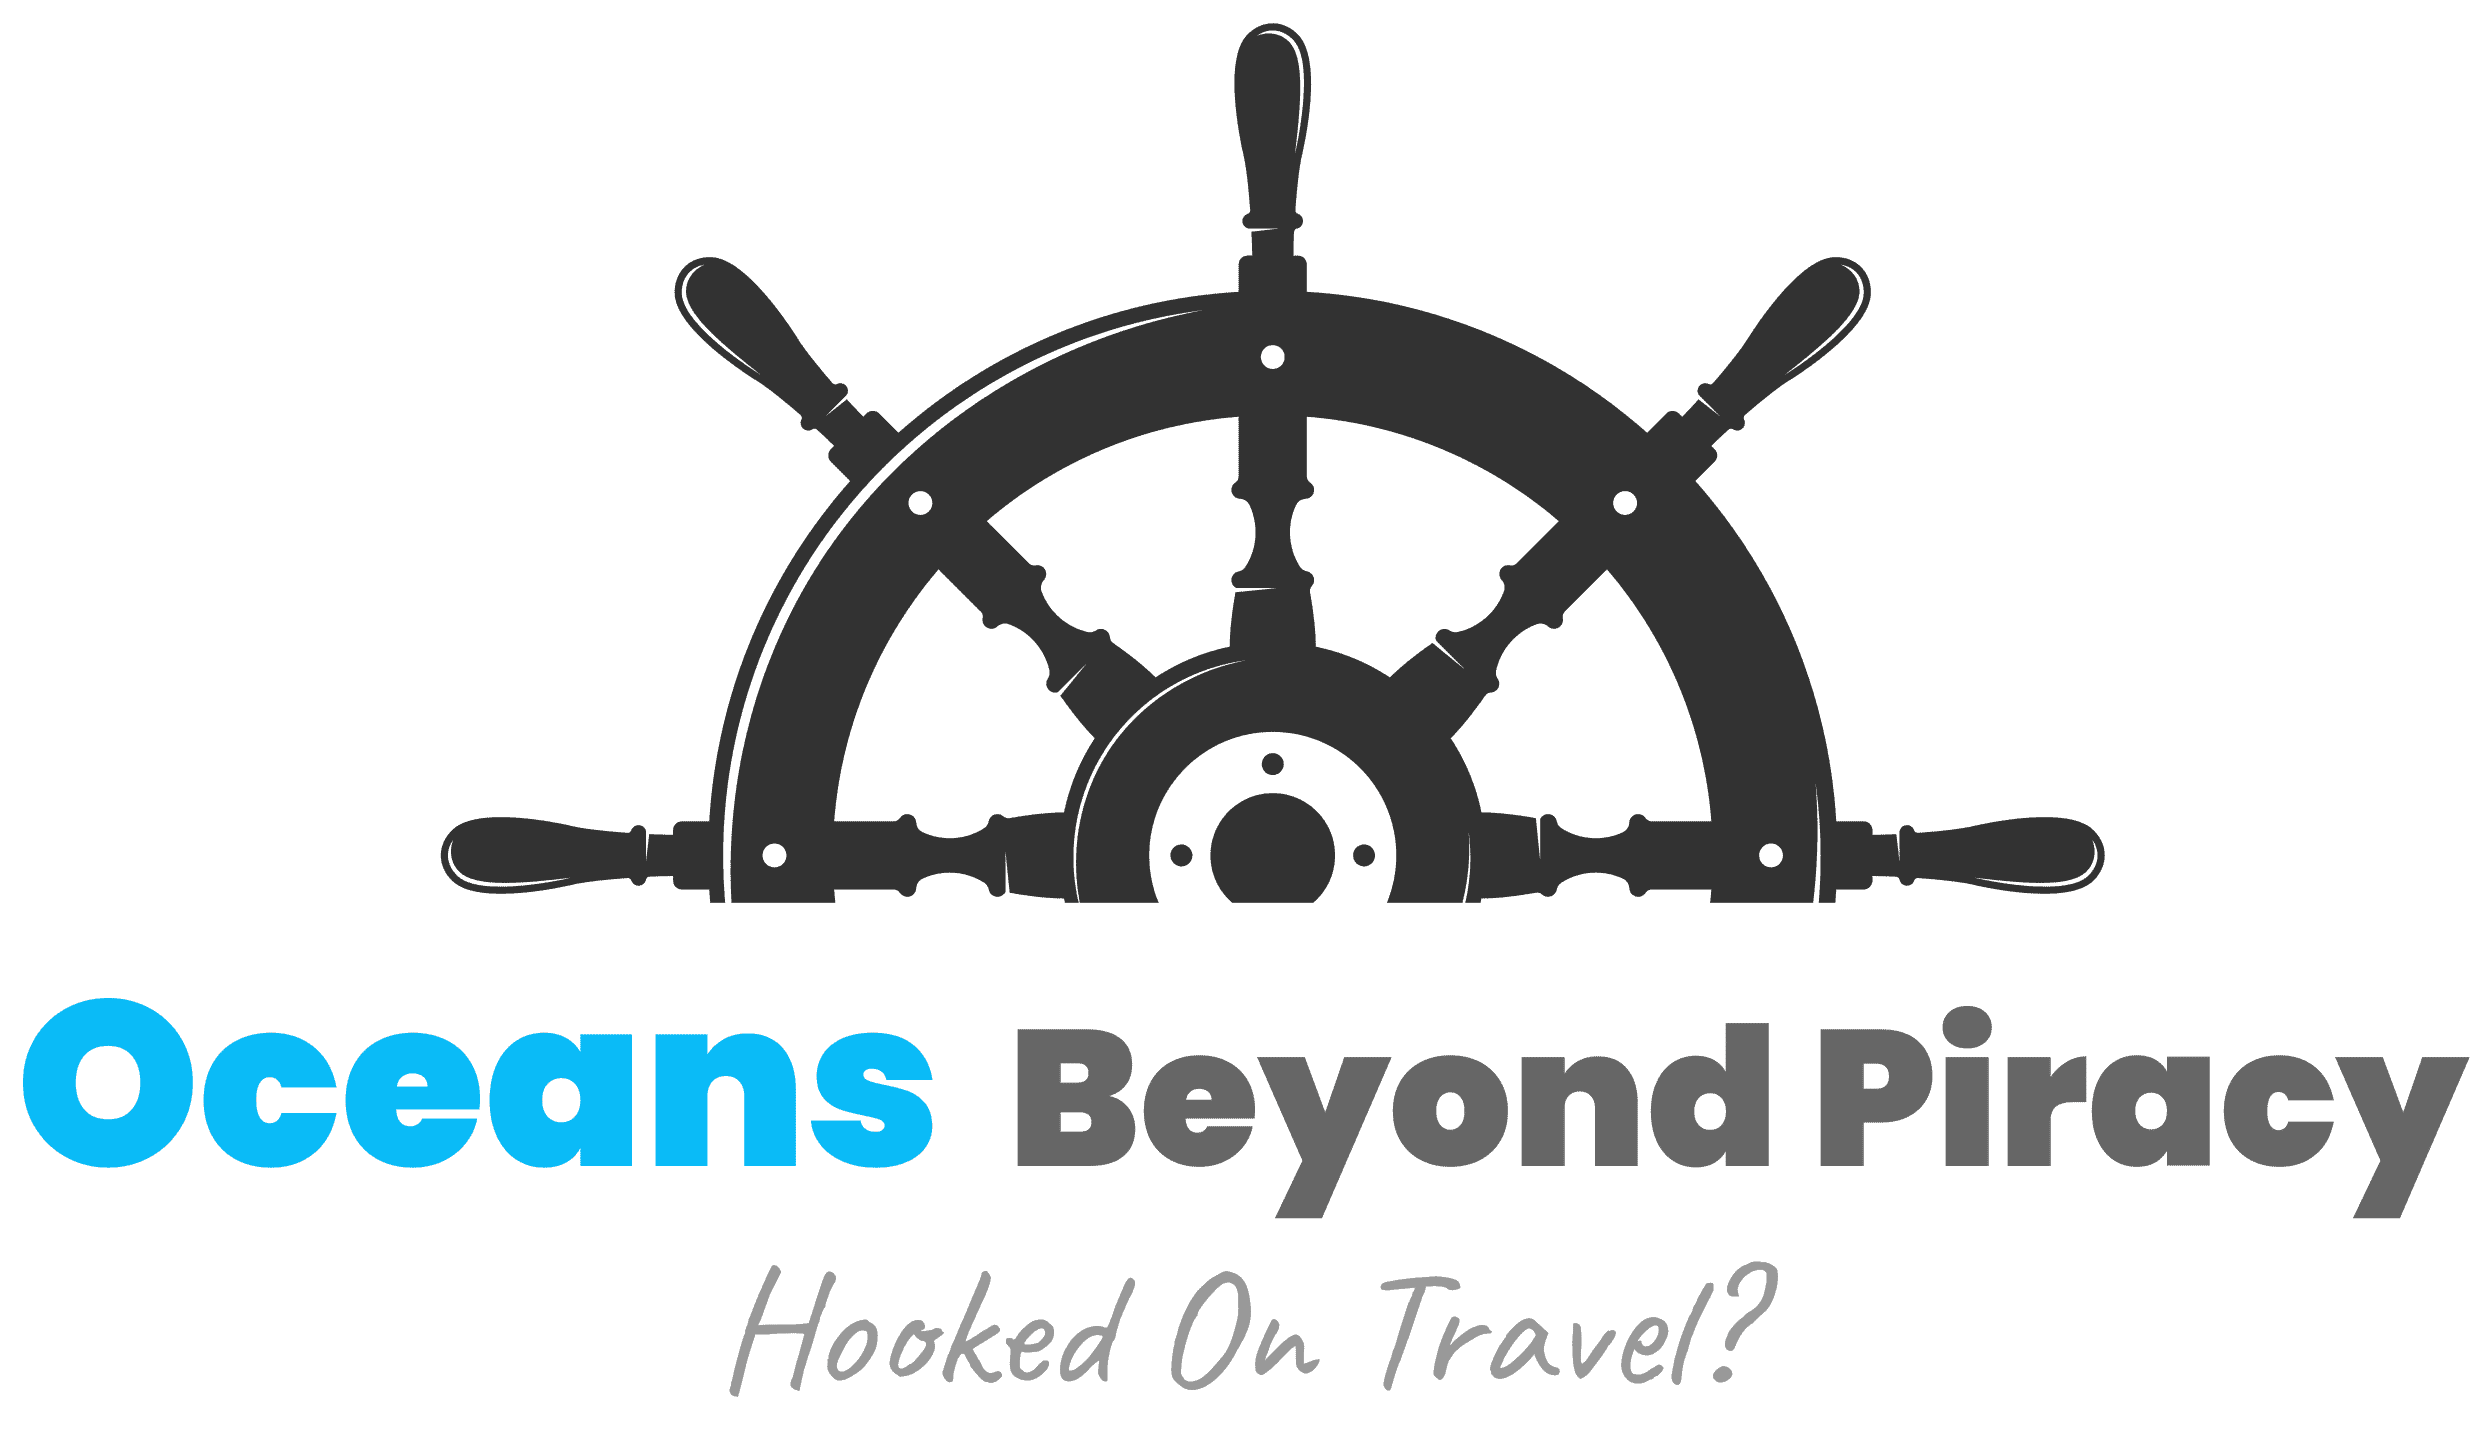 Oceans Beyond Piracy | Travel Blog Tours, Trips Guides & Tips